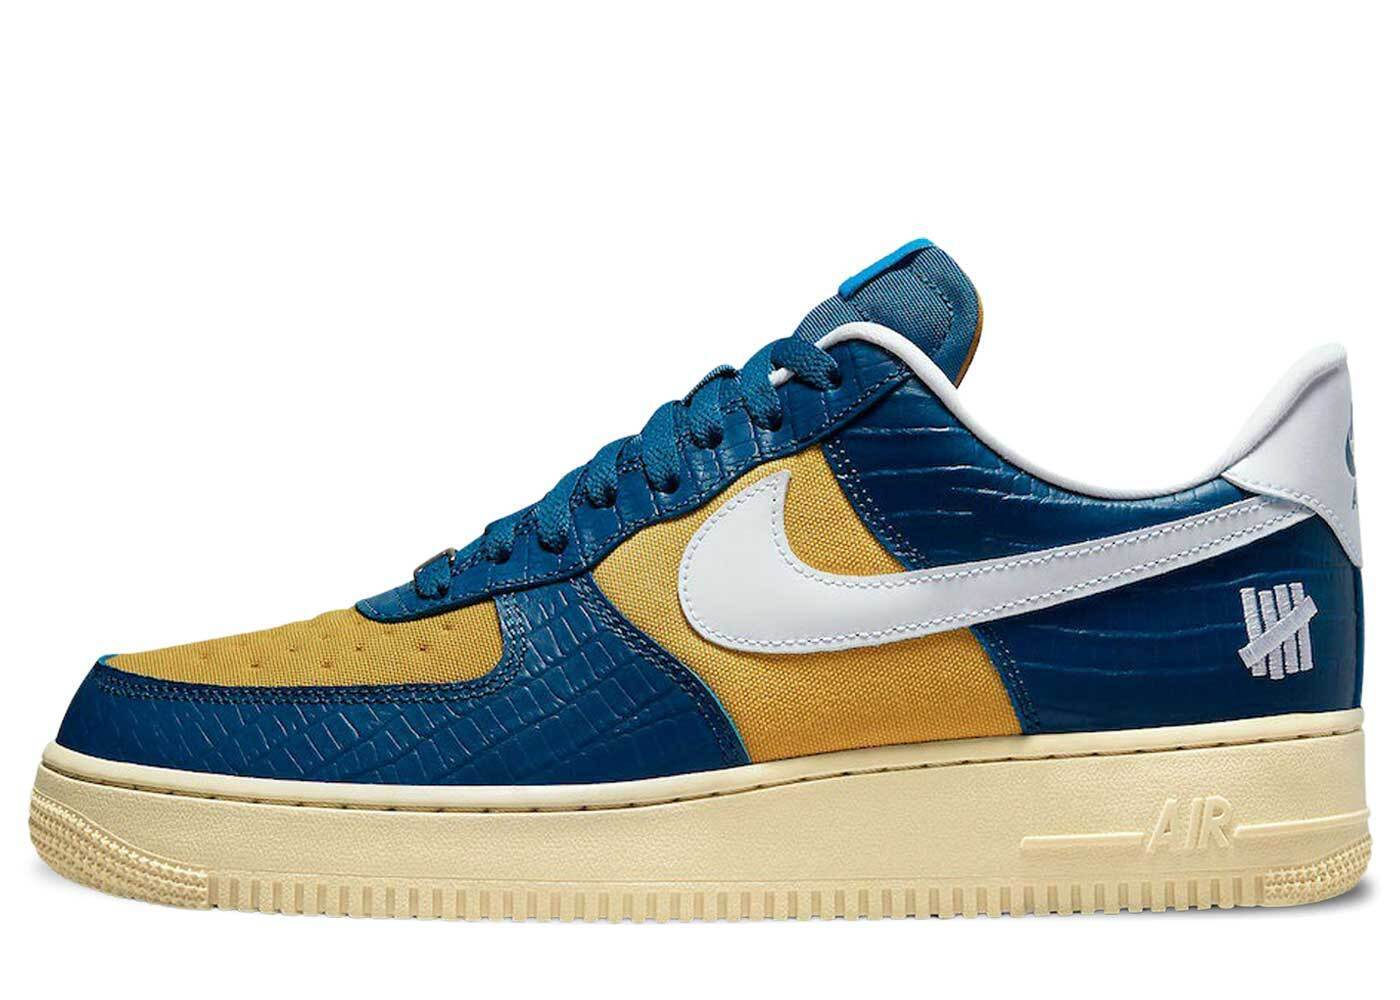 Undefeated × Nike Air Force 1 Low SP Blue Yellowの写真